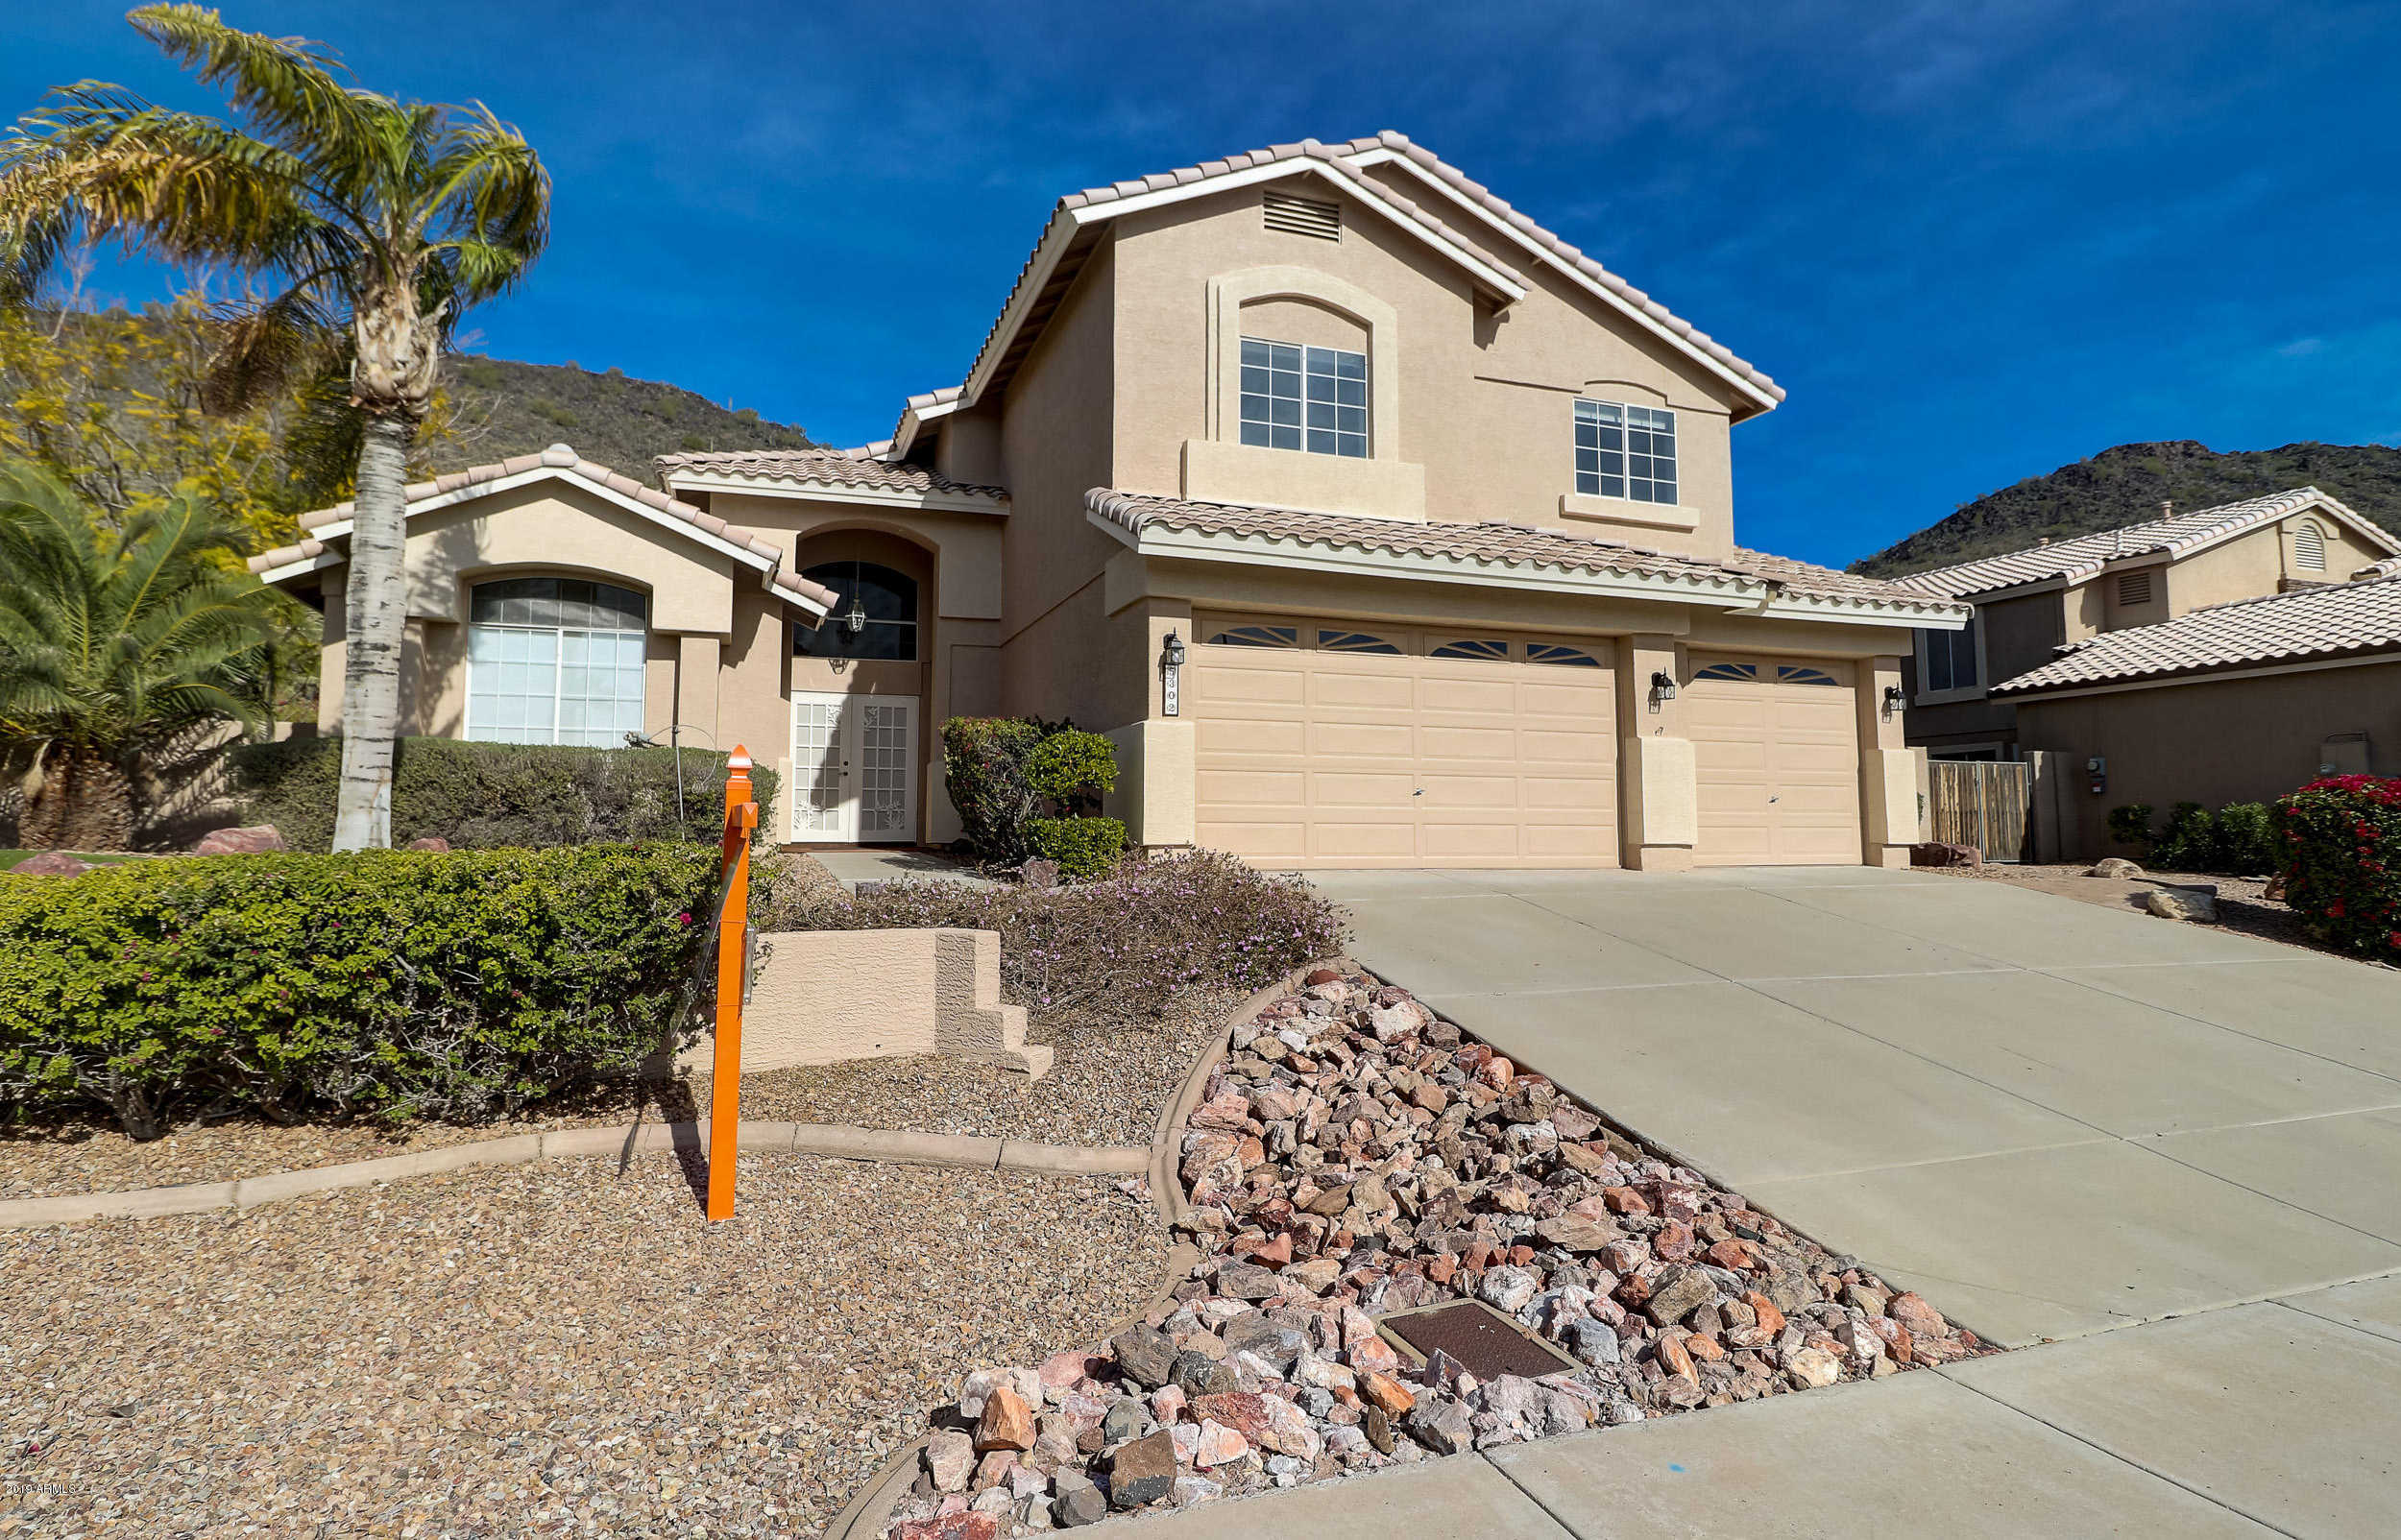 $543,000 - 5Br/4Ba - Home for Sale in Estates At Arrowhead Phase 1a, Glendale